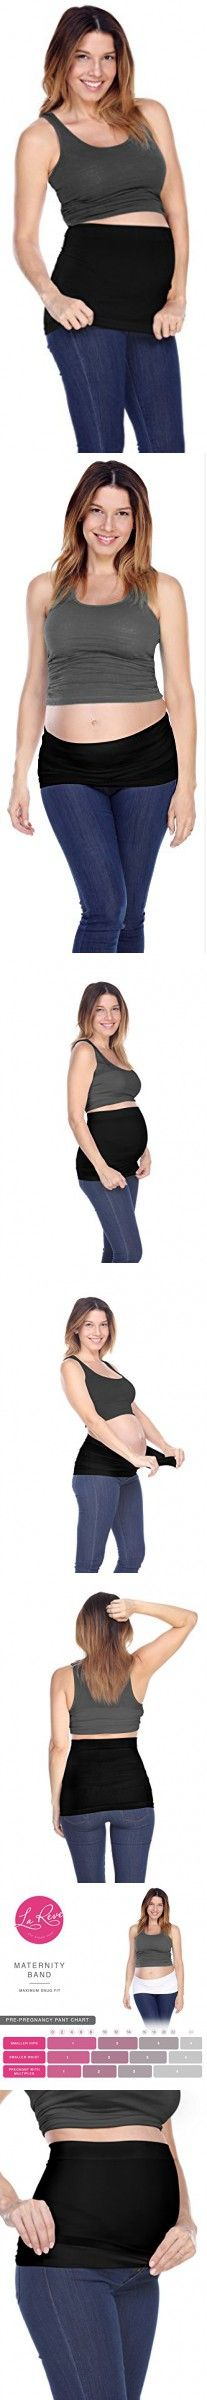 La Reve Maternity Belly Band | Seamless Waistband for all Stages of Pregnancy Black Large